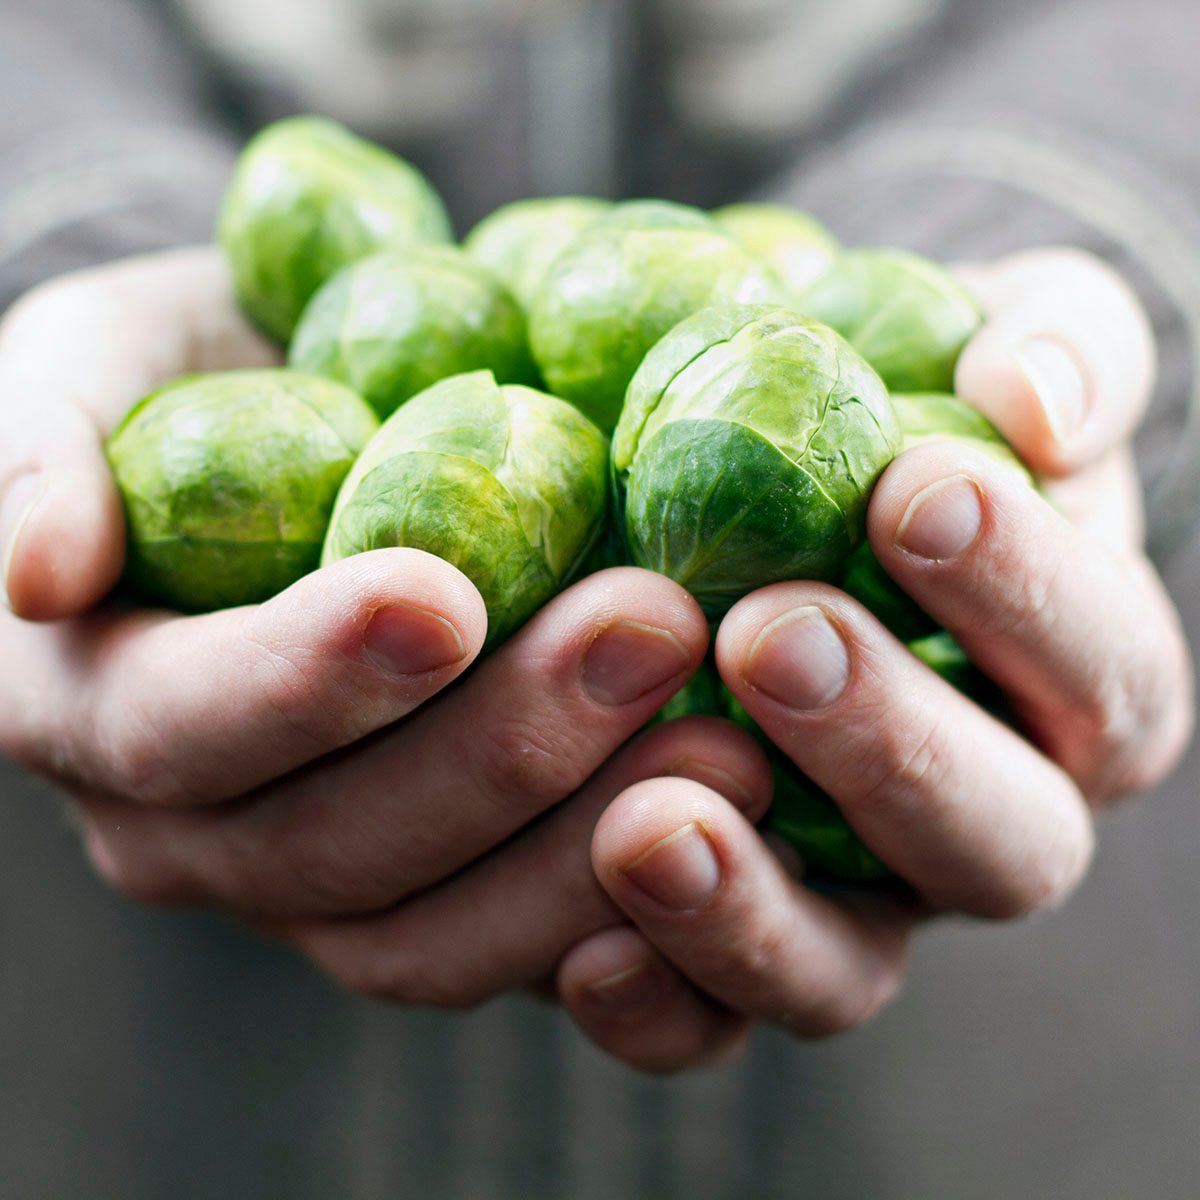 Mans hands holding handful of Brussels sprouts.